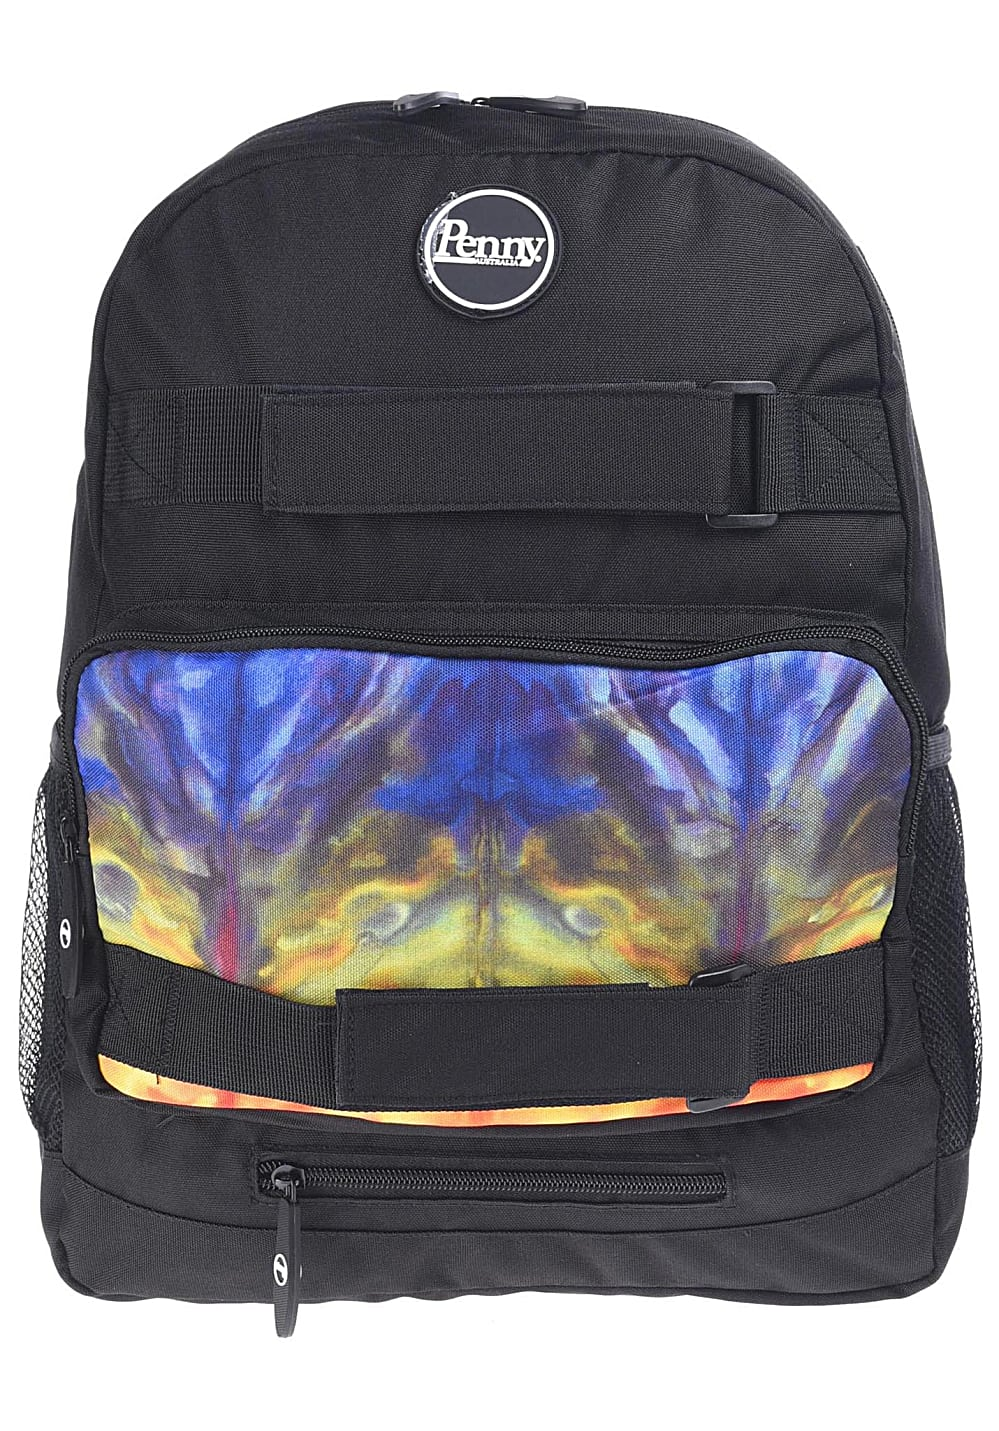 Penny Pouch Rucksack Mehrfarbig